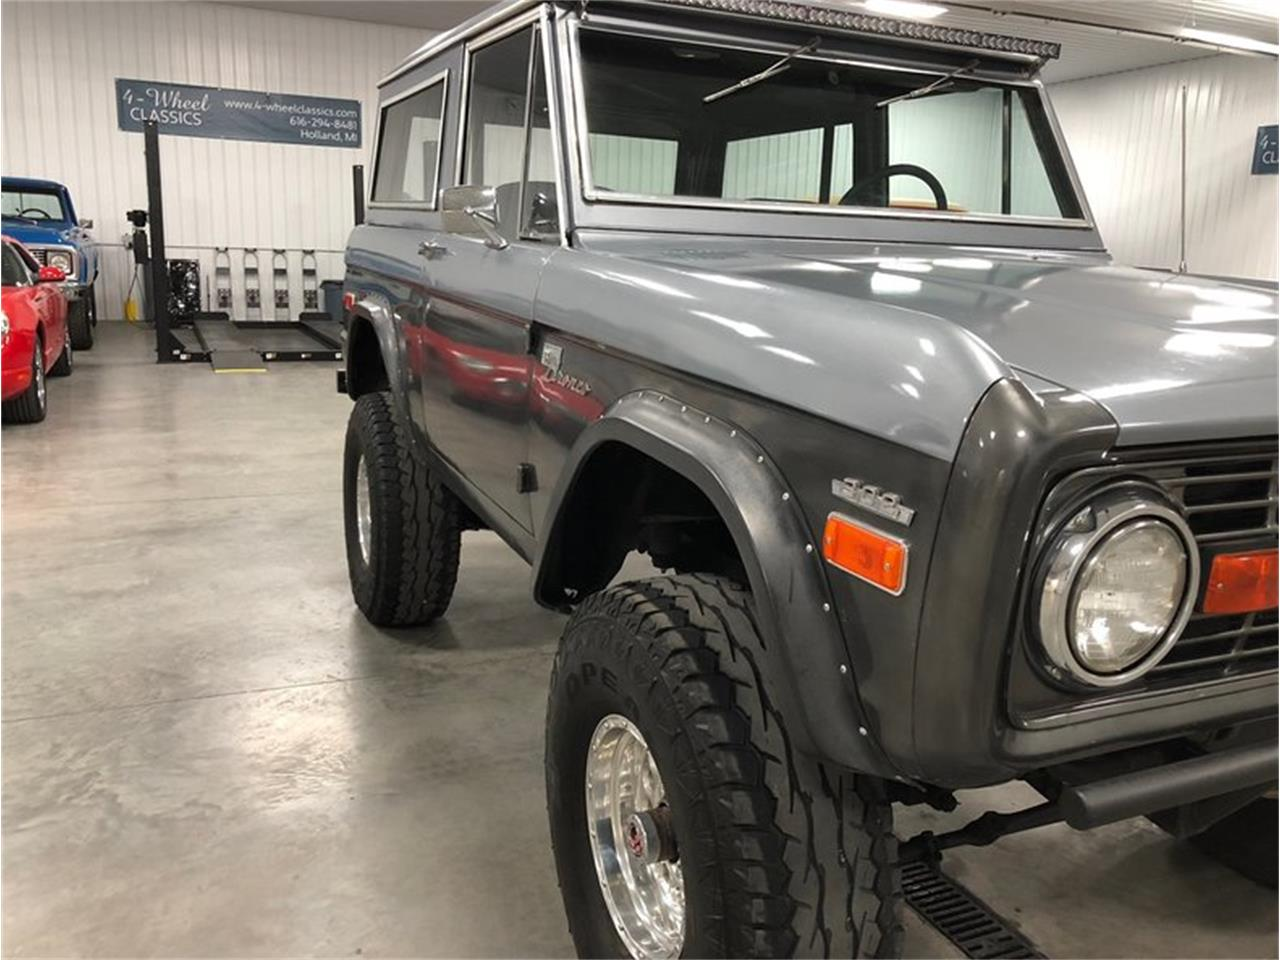 Large Picture of Classic '70 Ford Bronco located in Michigan - $25,900.00 - MF7T